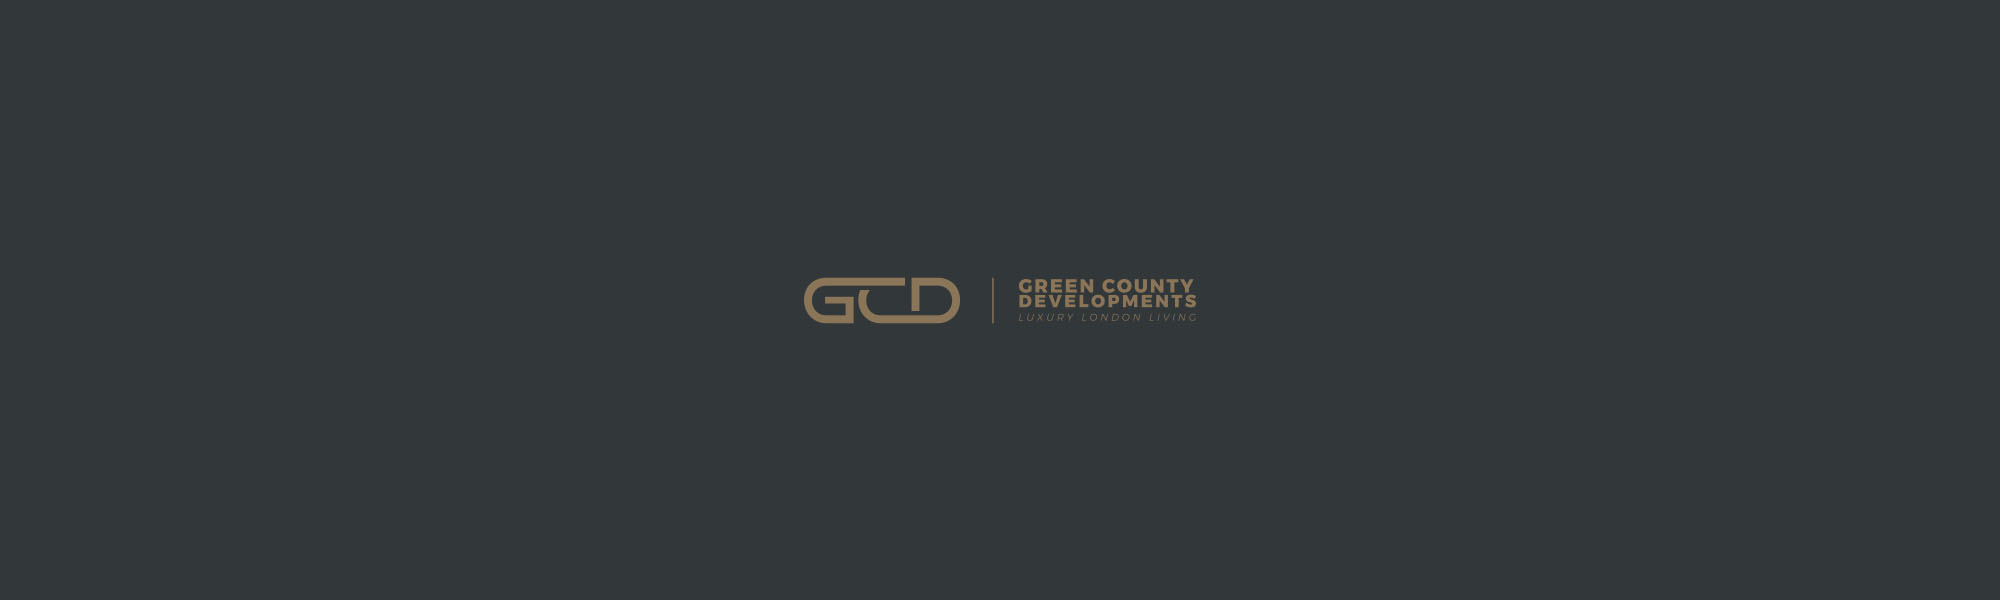 GCD, Green County Developments